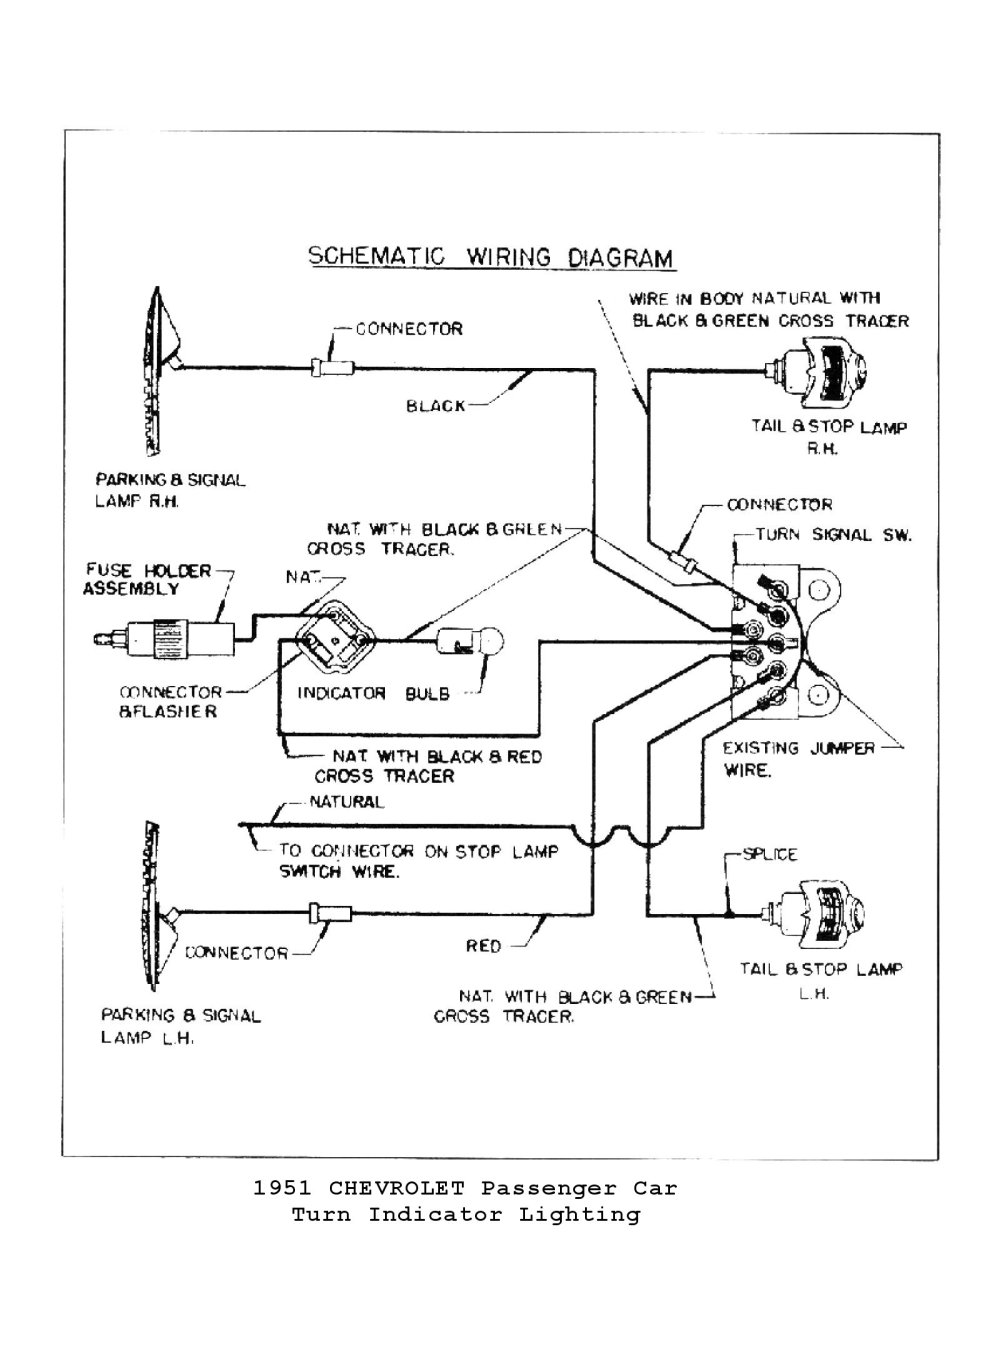 medium resolution of chevy wiring diagrams 1948 chevy stylemaster wiring diagram 1948 chevrolet wiring diagram